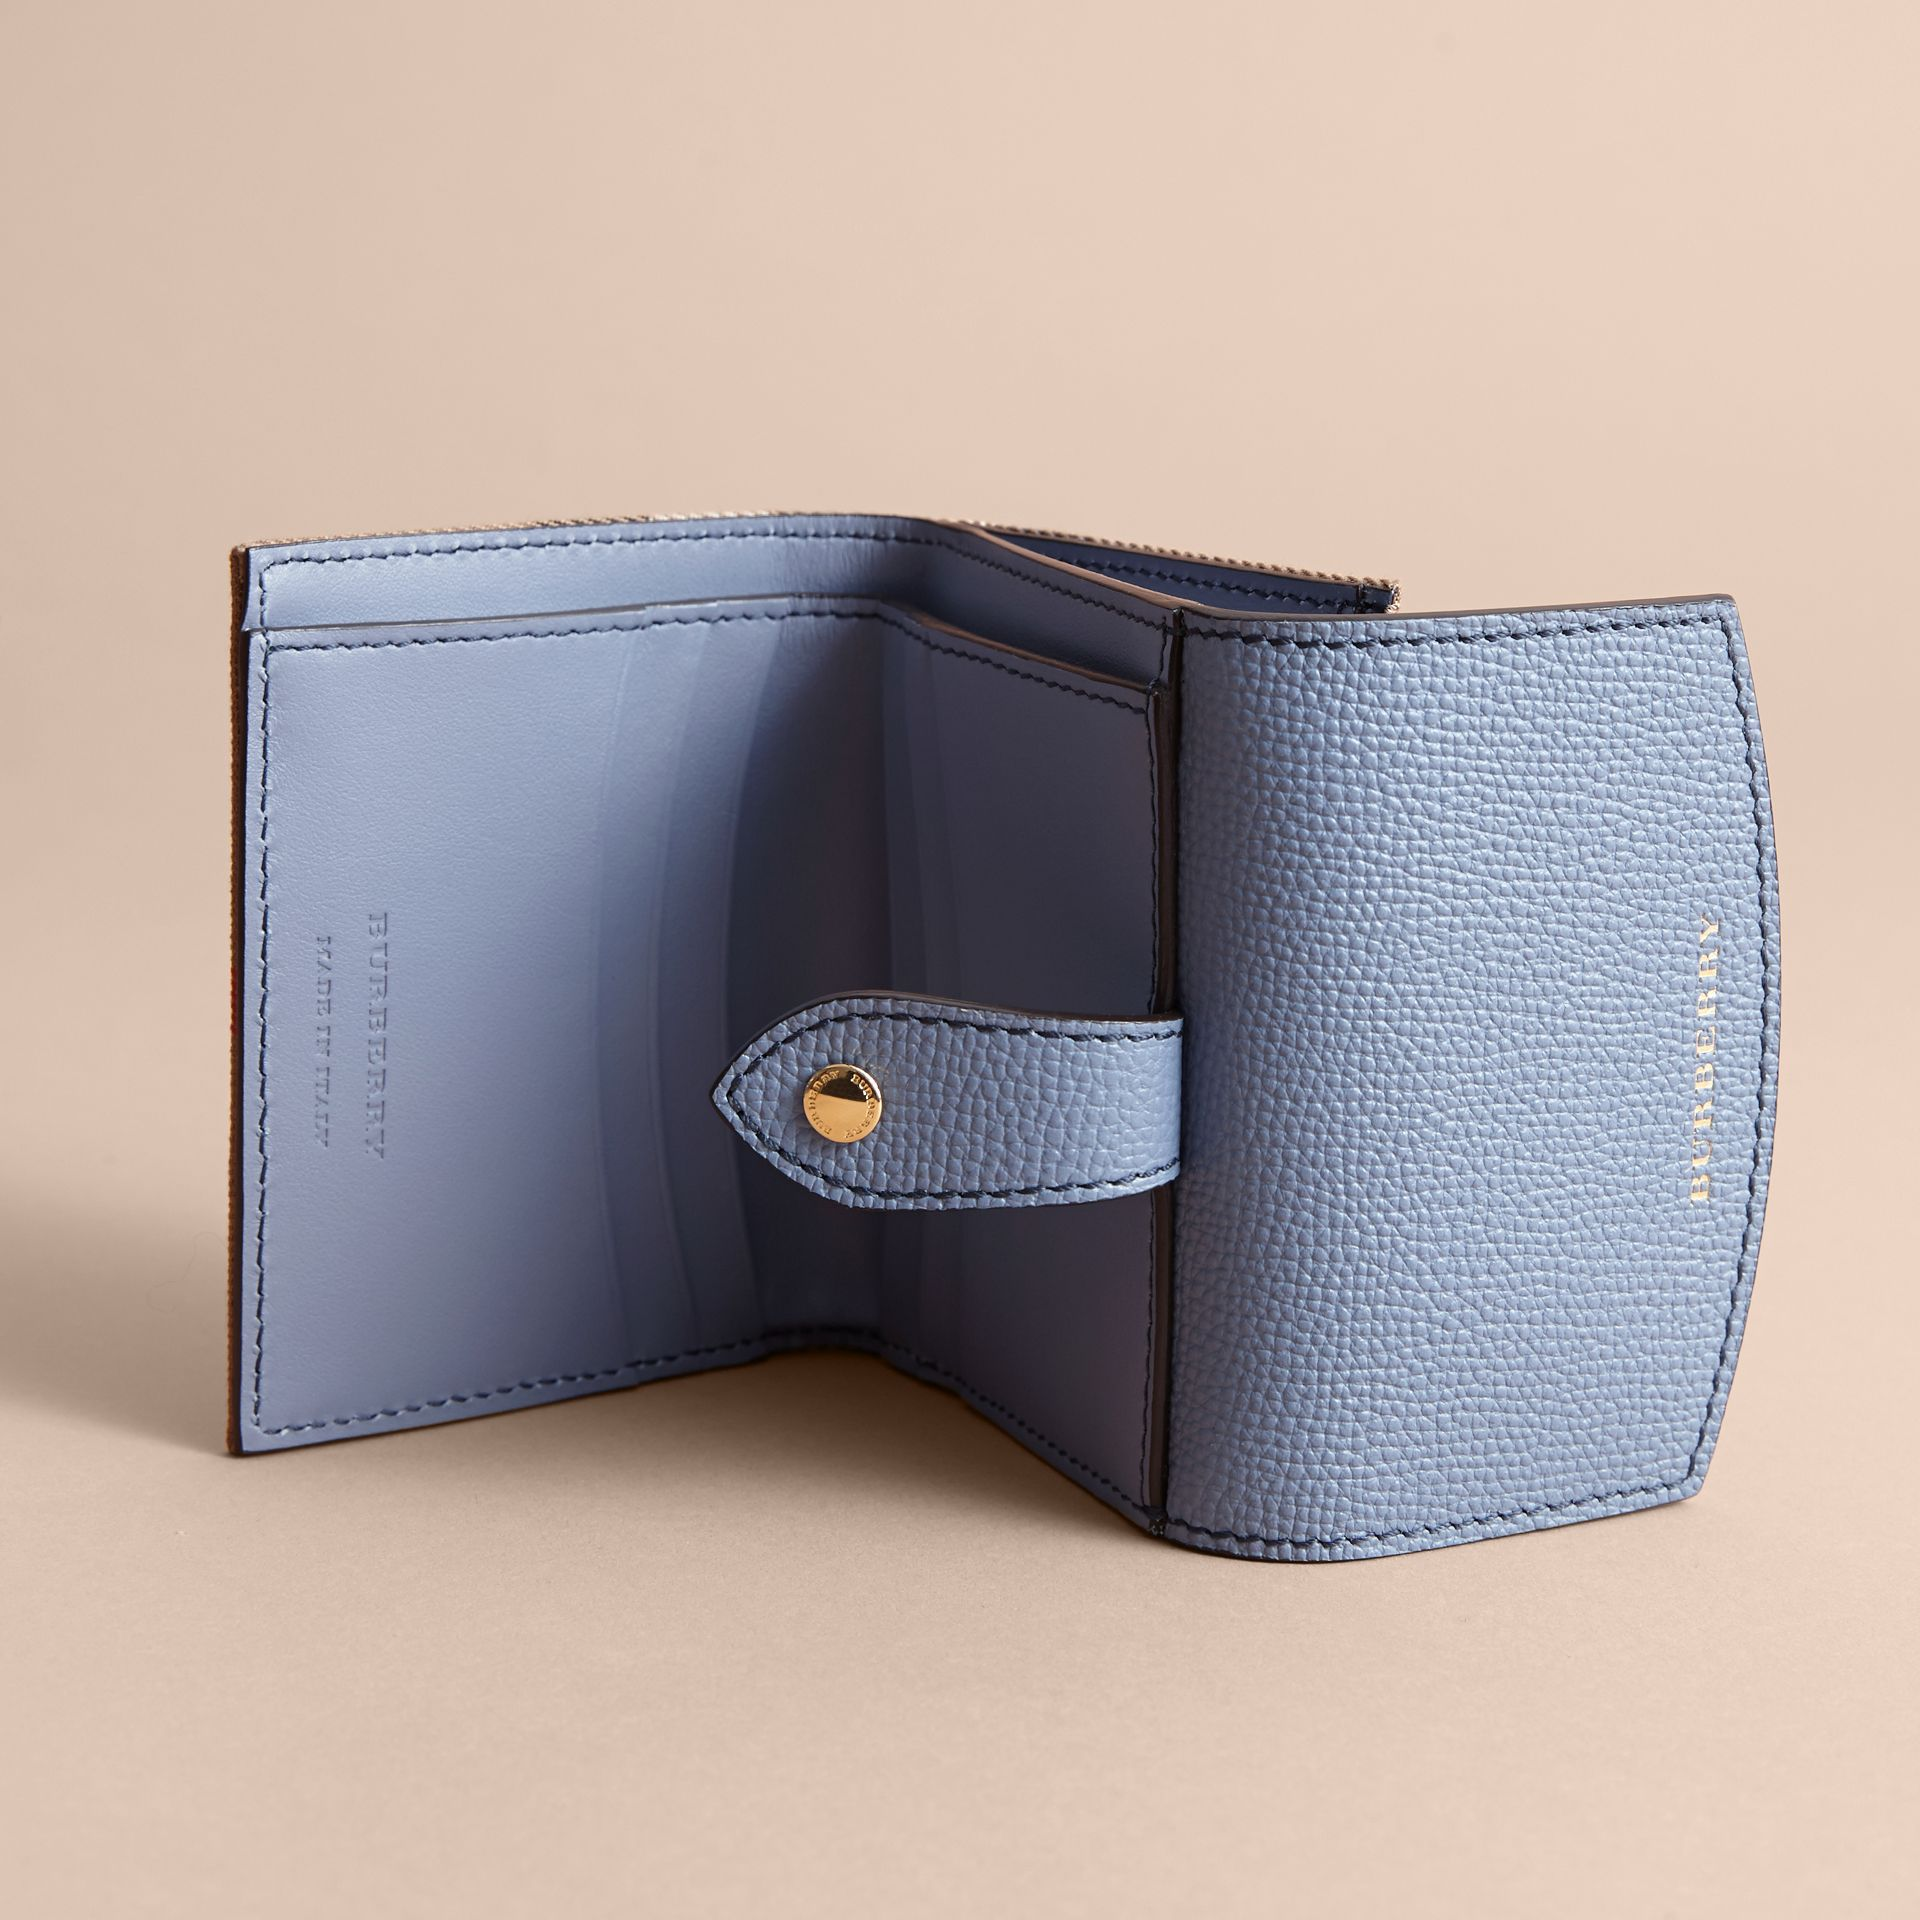 House Check and Leather Wallet in Slate Blue - Women | Burberry - gallery image 5